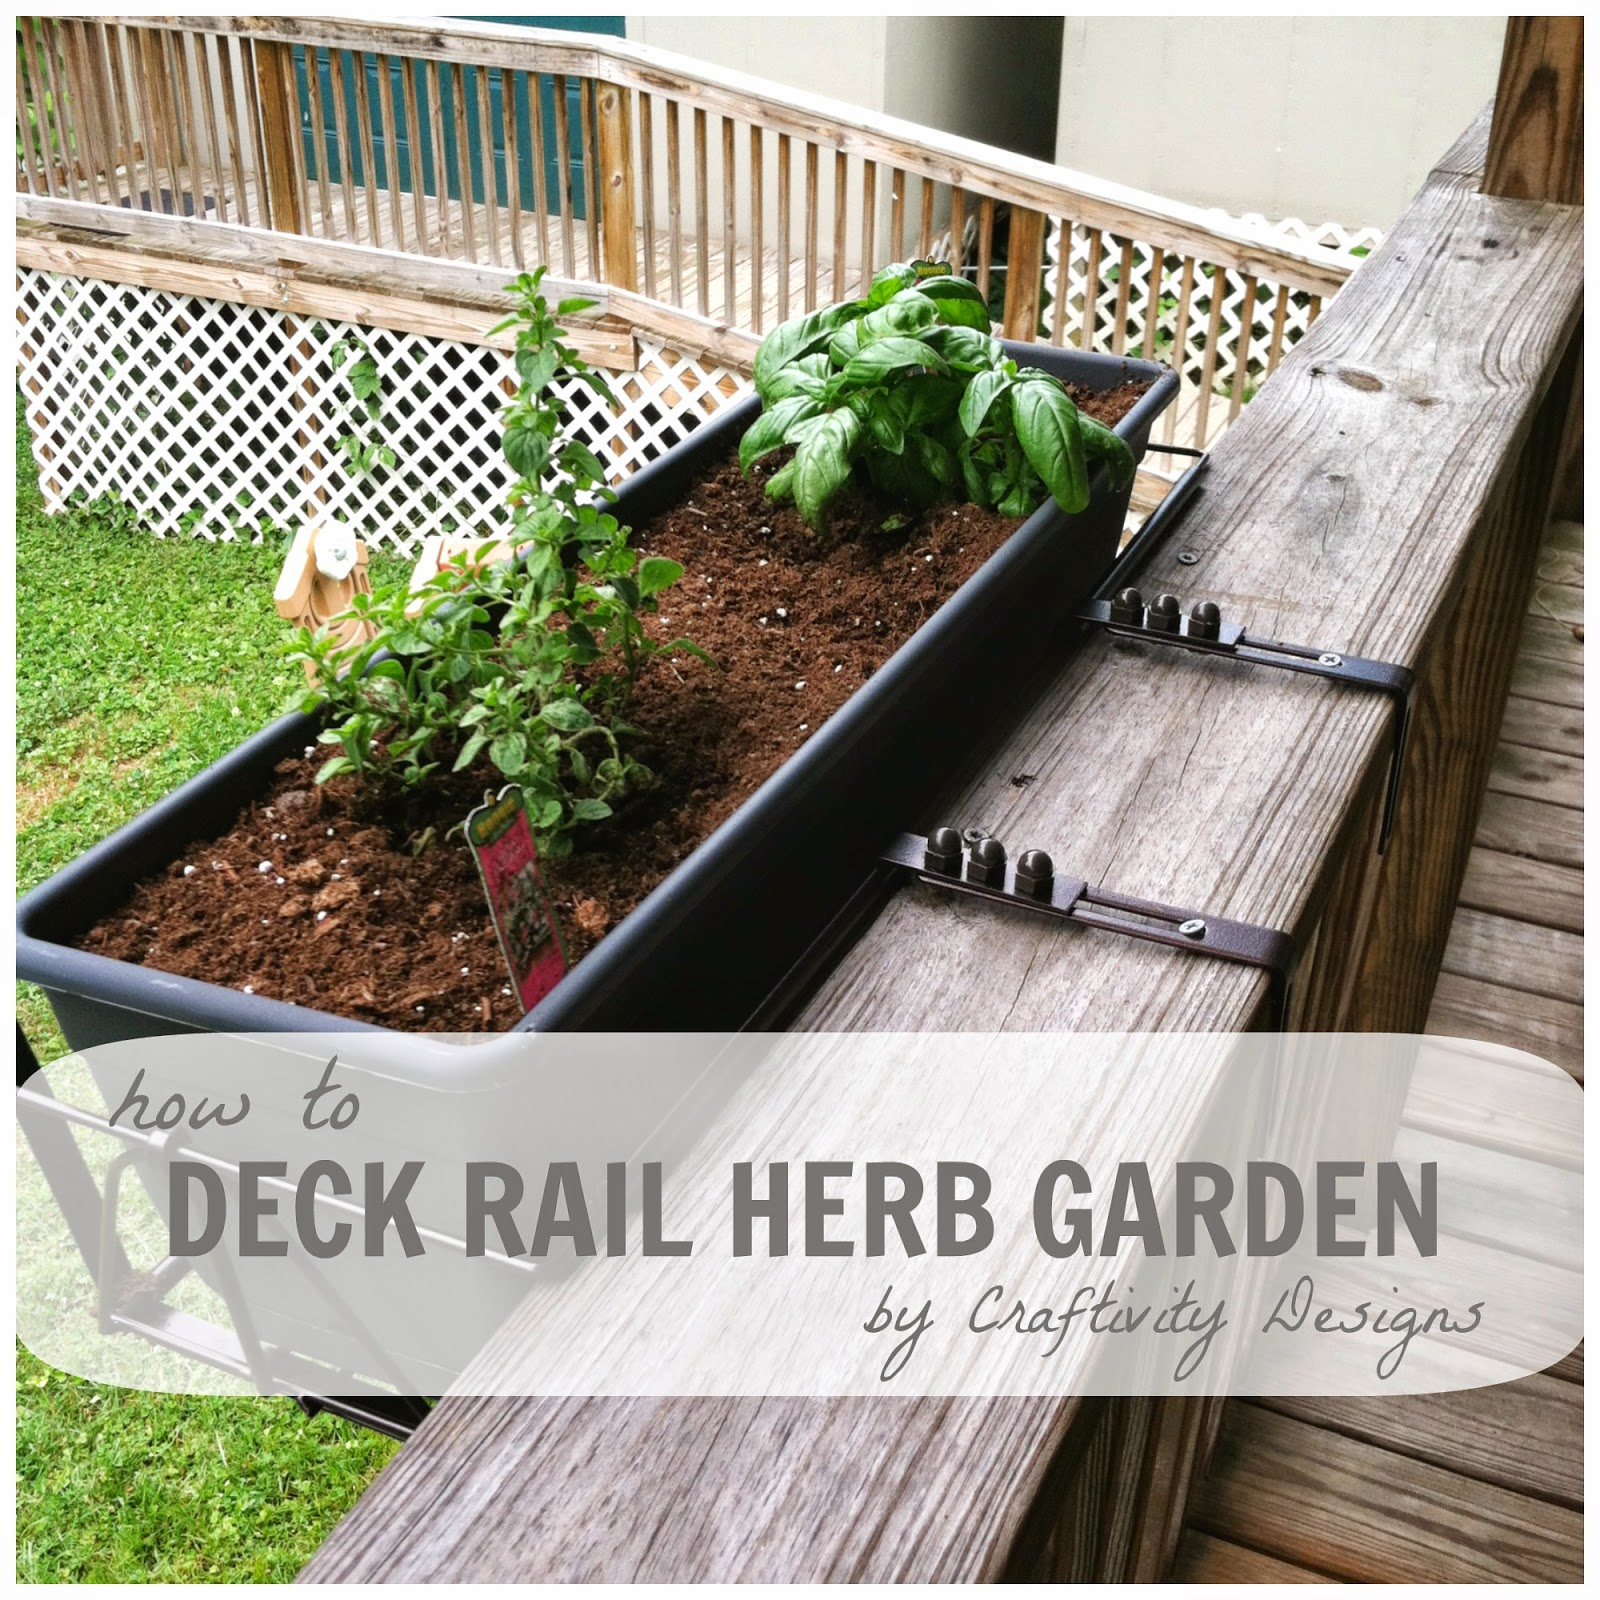 Small space gardening 20 great ideas proverbial homemaker for Patio herb garden designs containers